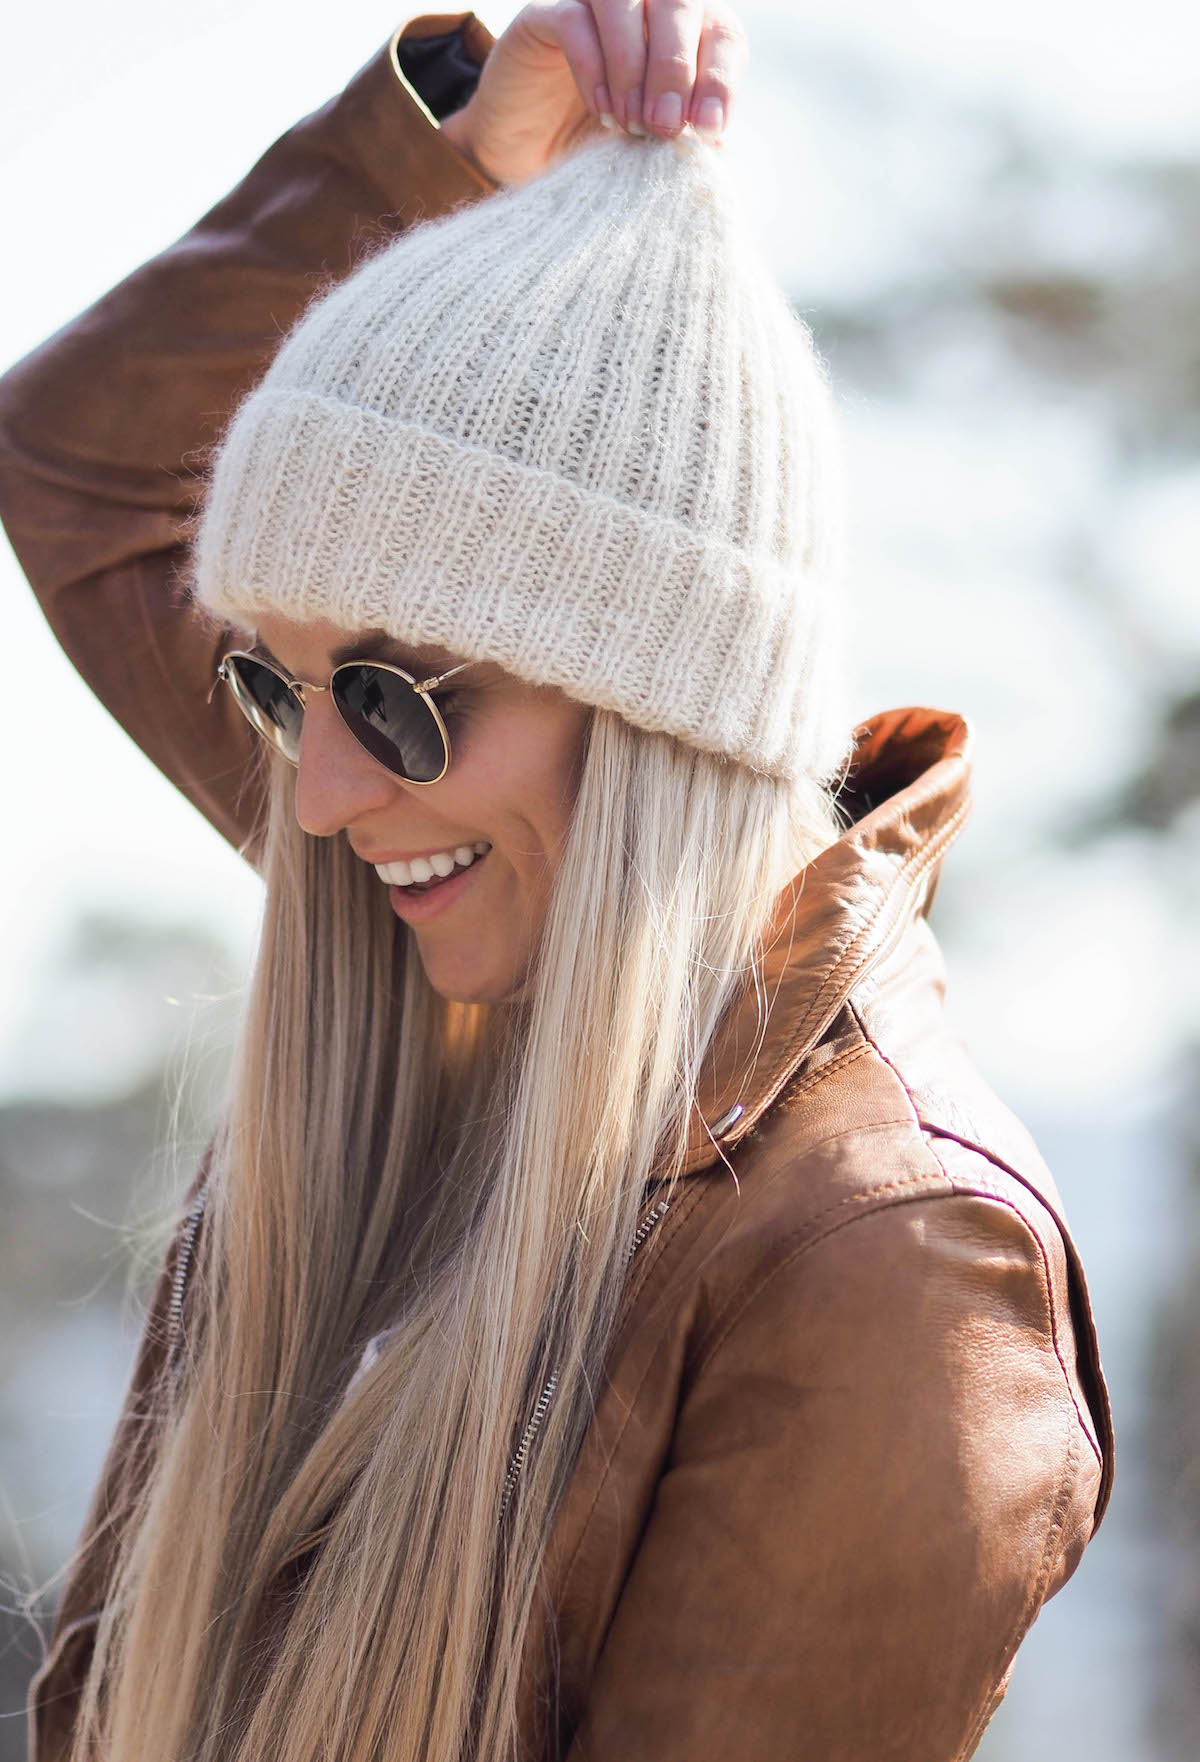 the hipster hat